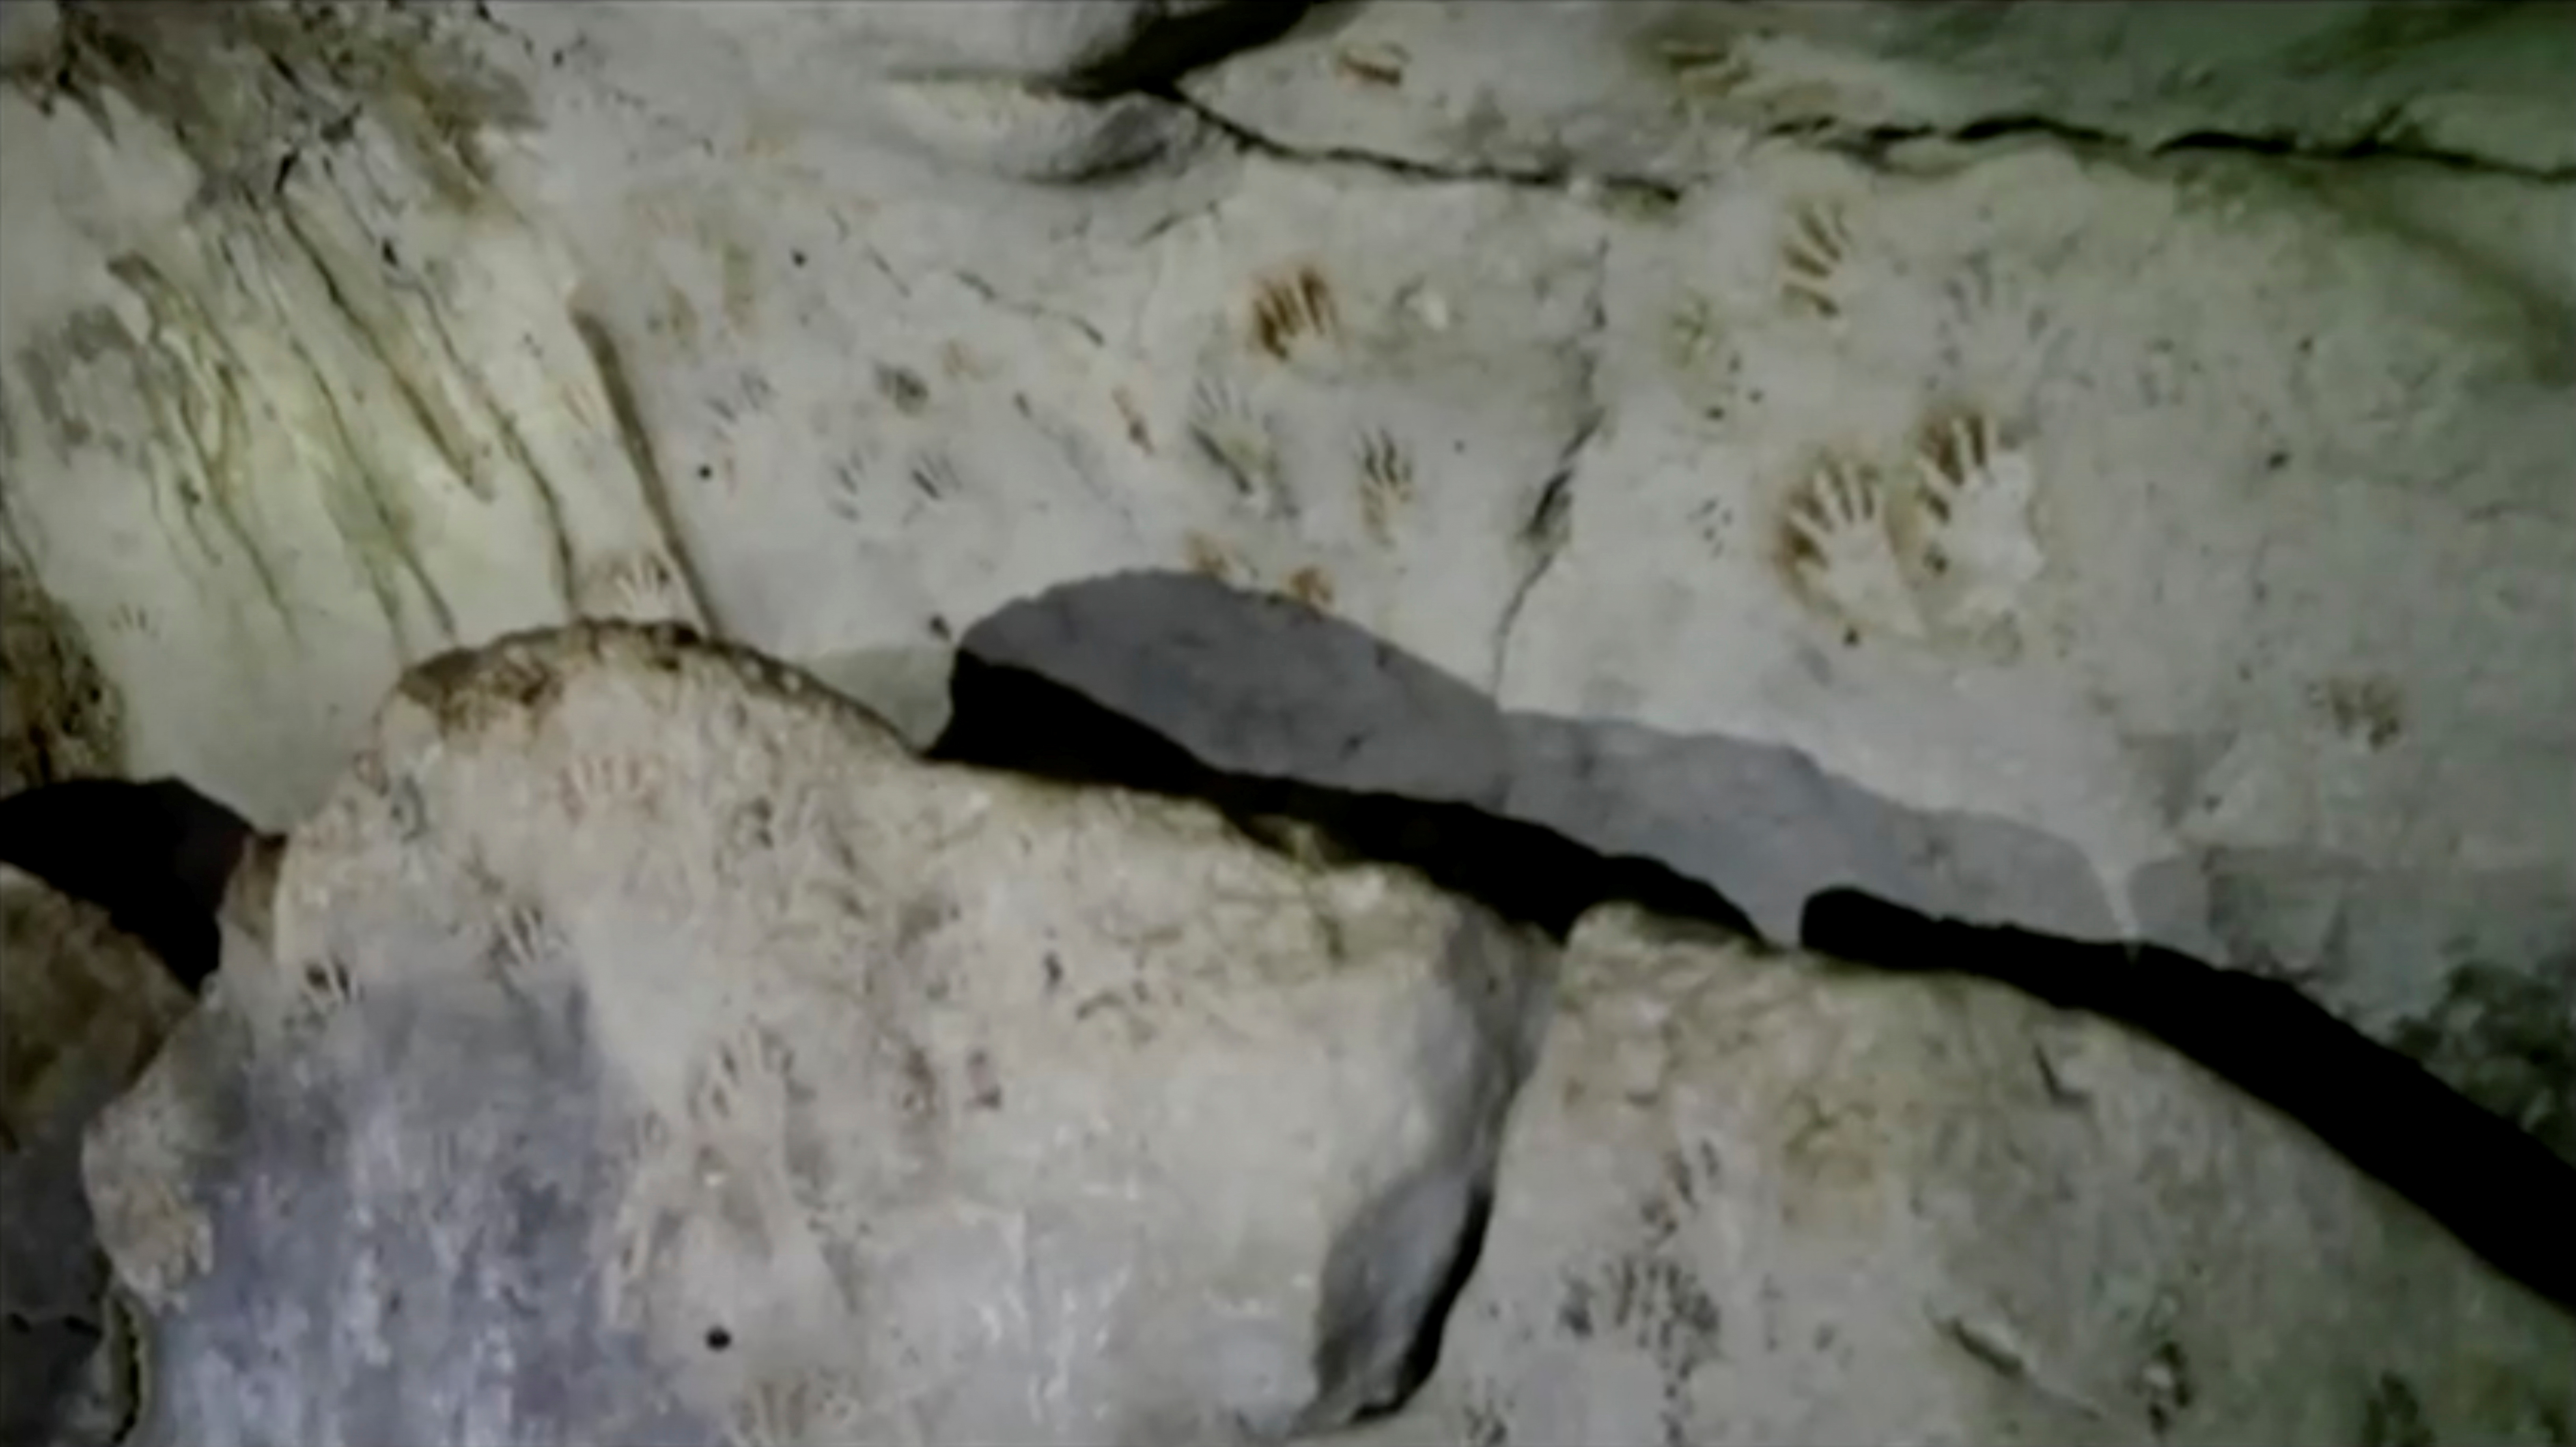 Hand prints, reportedly 1,200 years old, are seen on the cave walls, in Merida, Mexico April 2021, in this screengrab taken from a handout video. SERGIO GROSJEAN/Handout via REUTERS